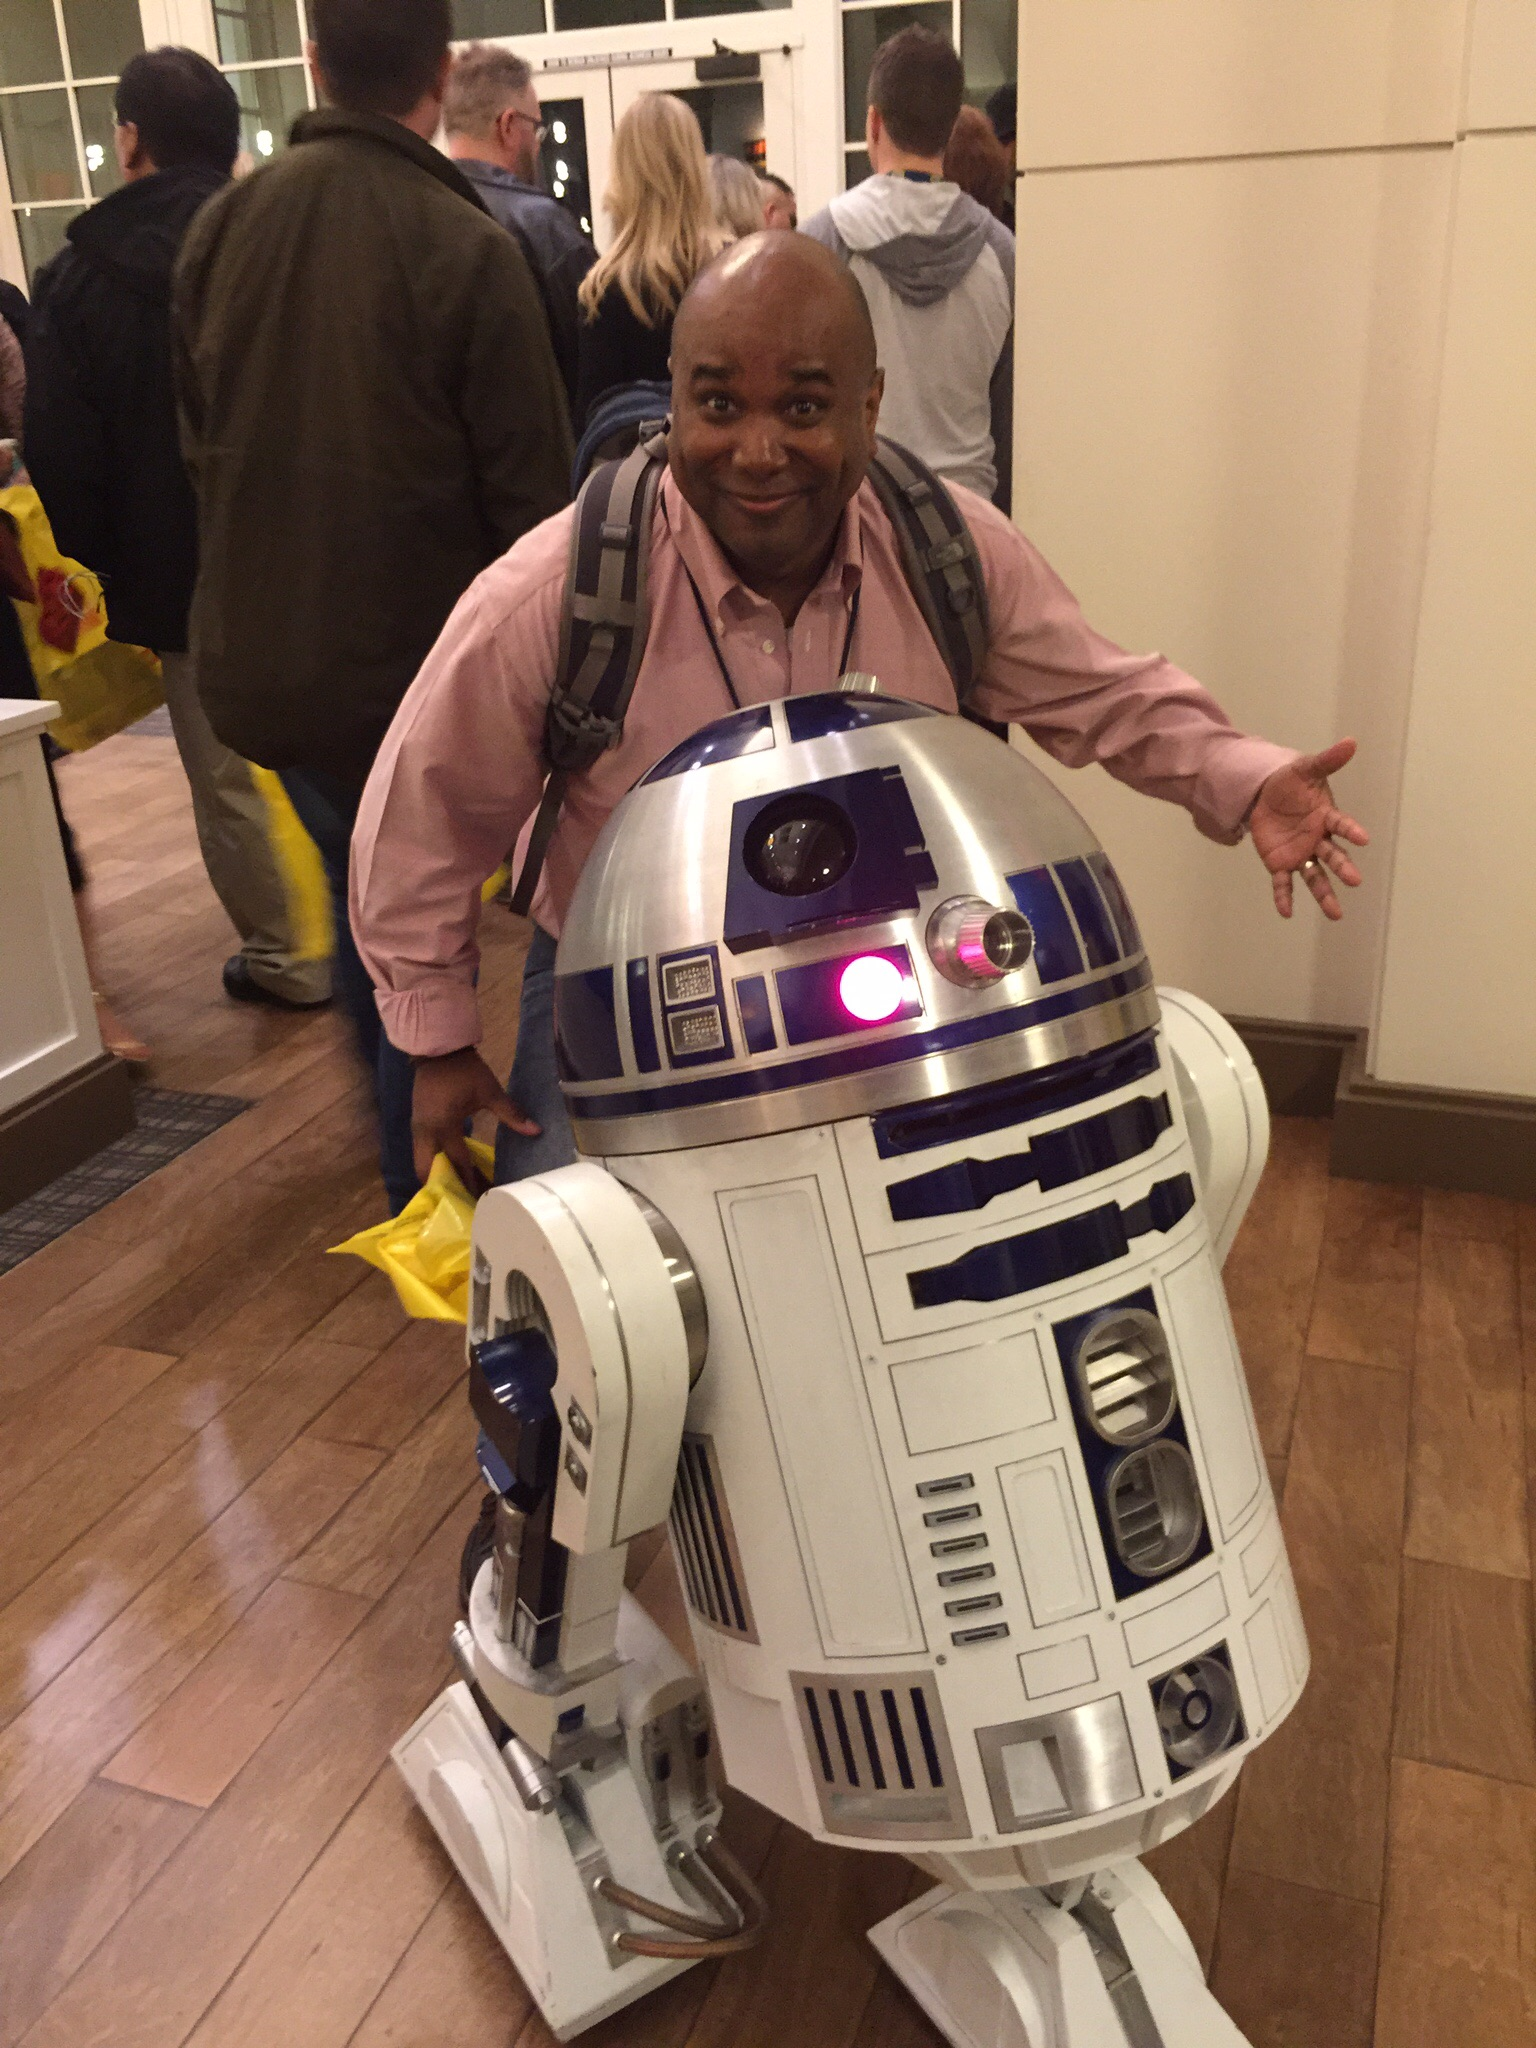 This was the droid I was looking for.